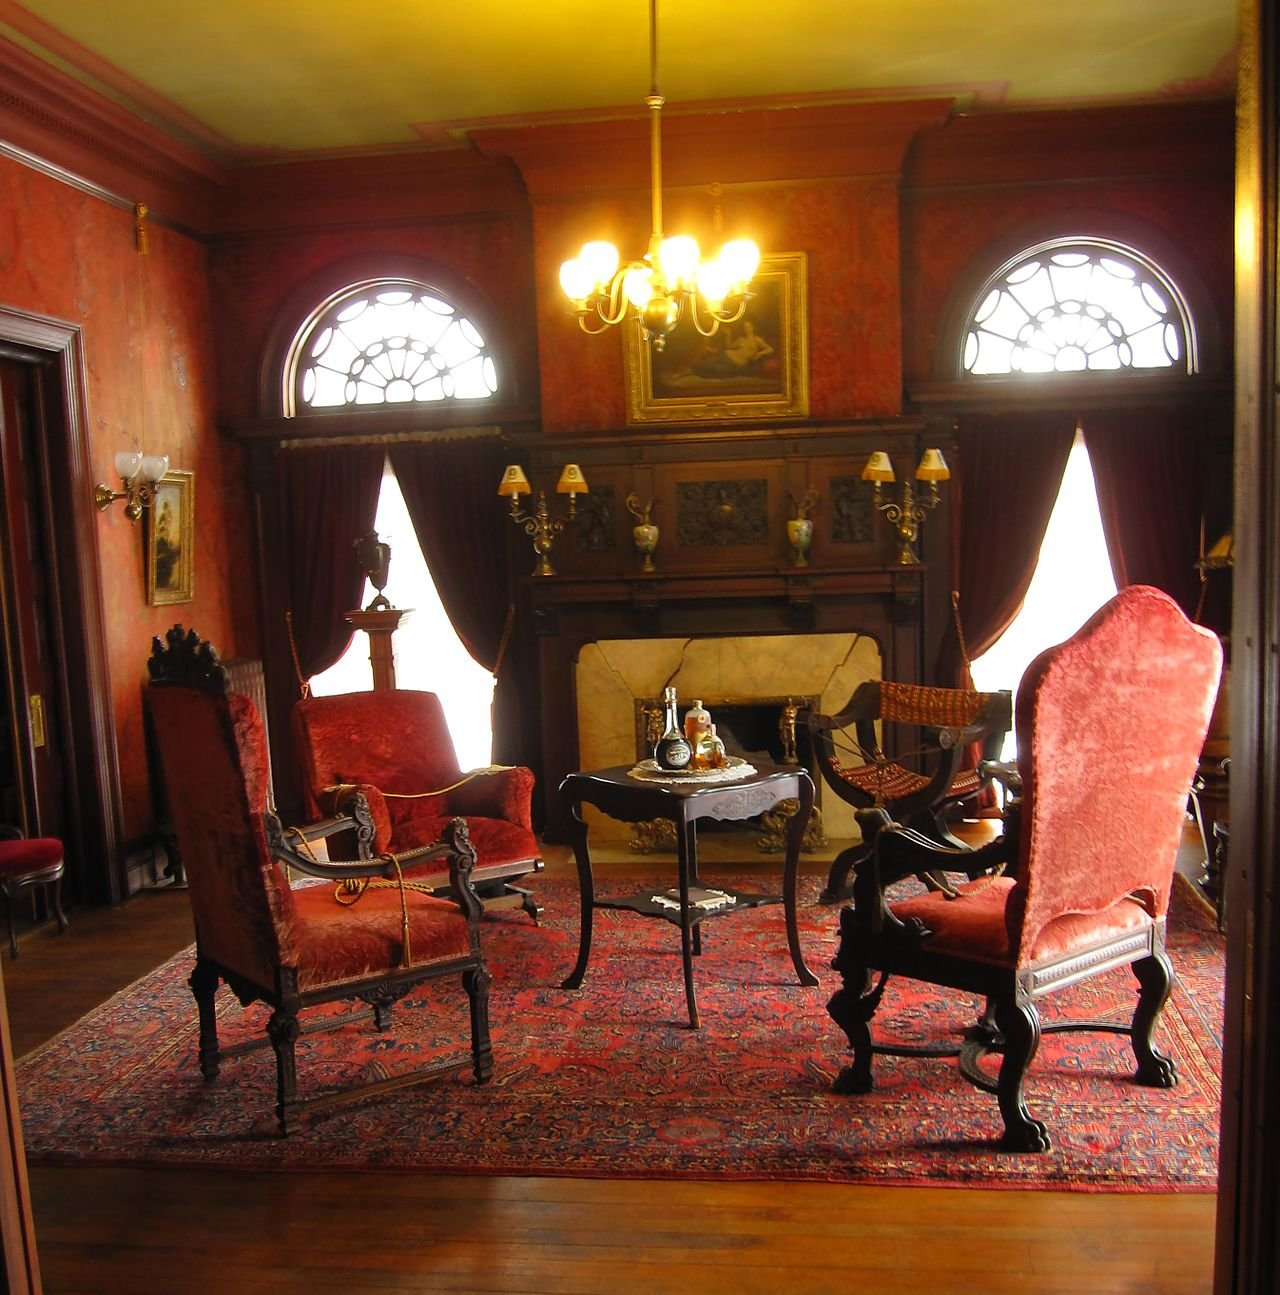 The mansion features many large rooms and antique furnishings.